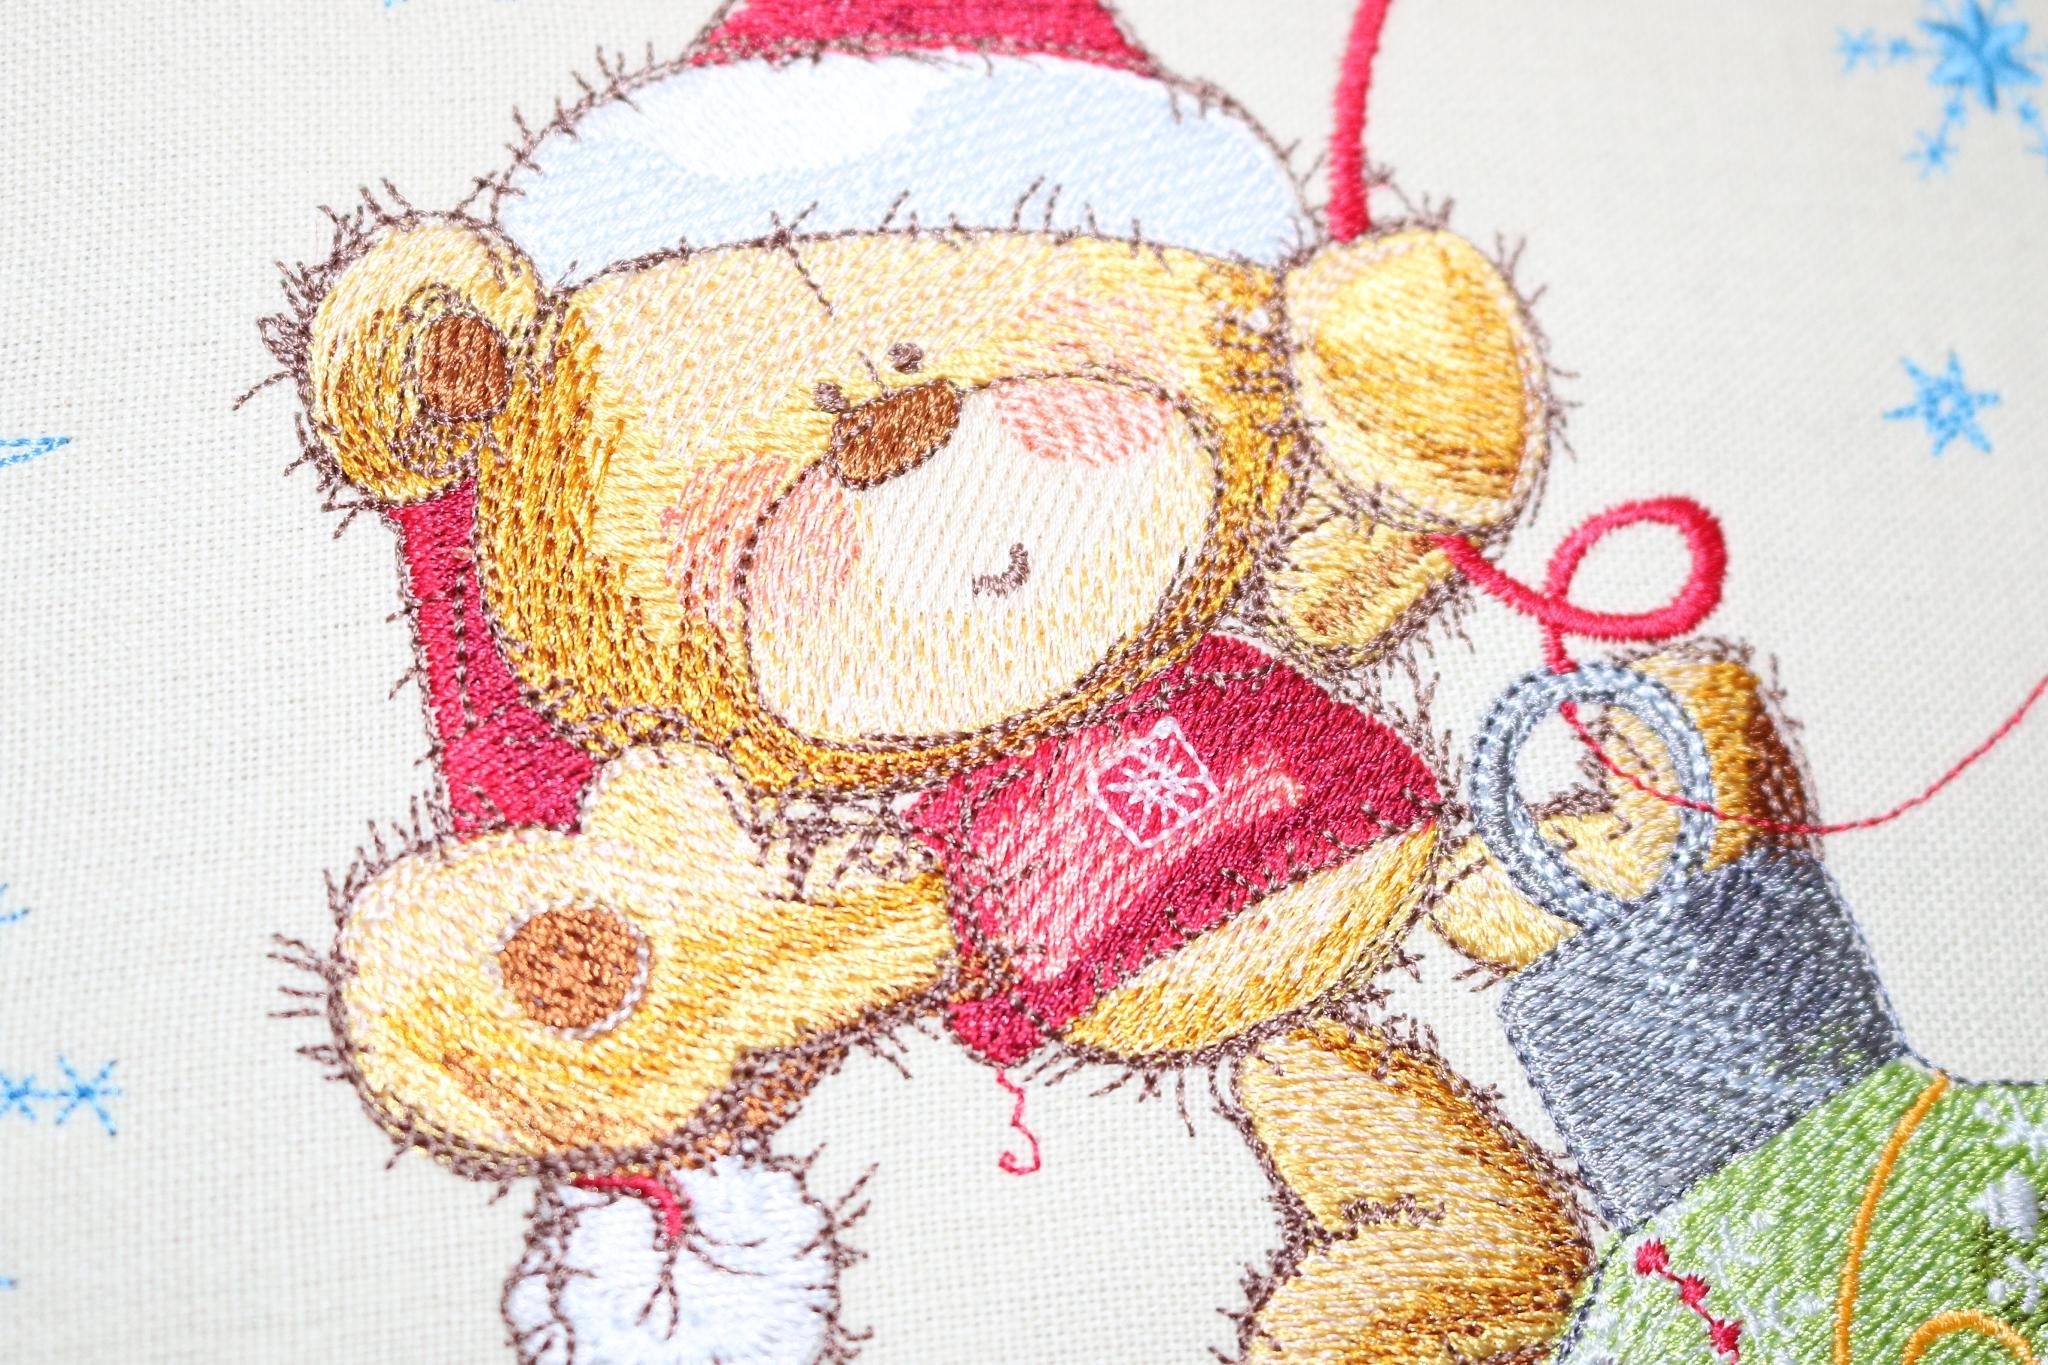 Teddy bear on Christmas ball embroidery design